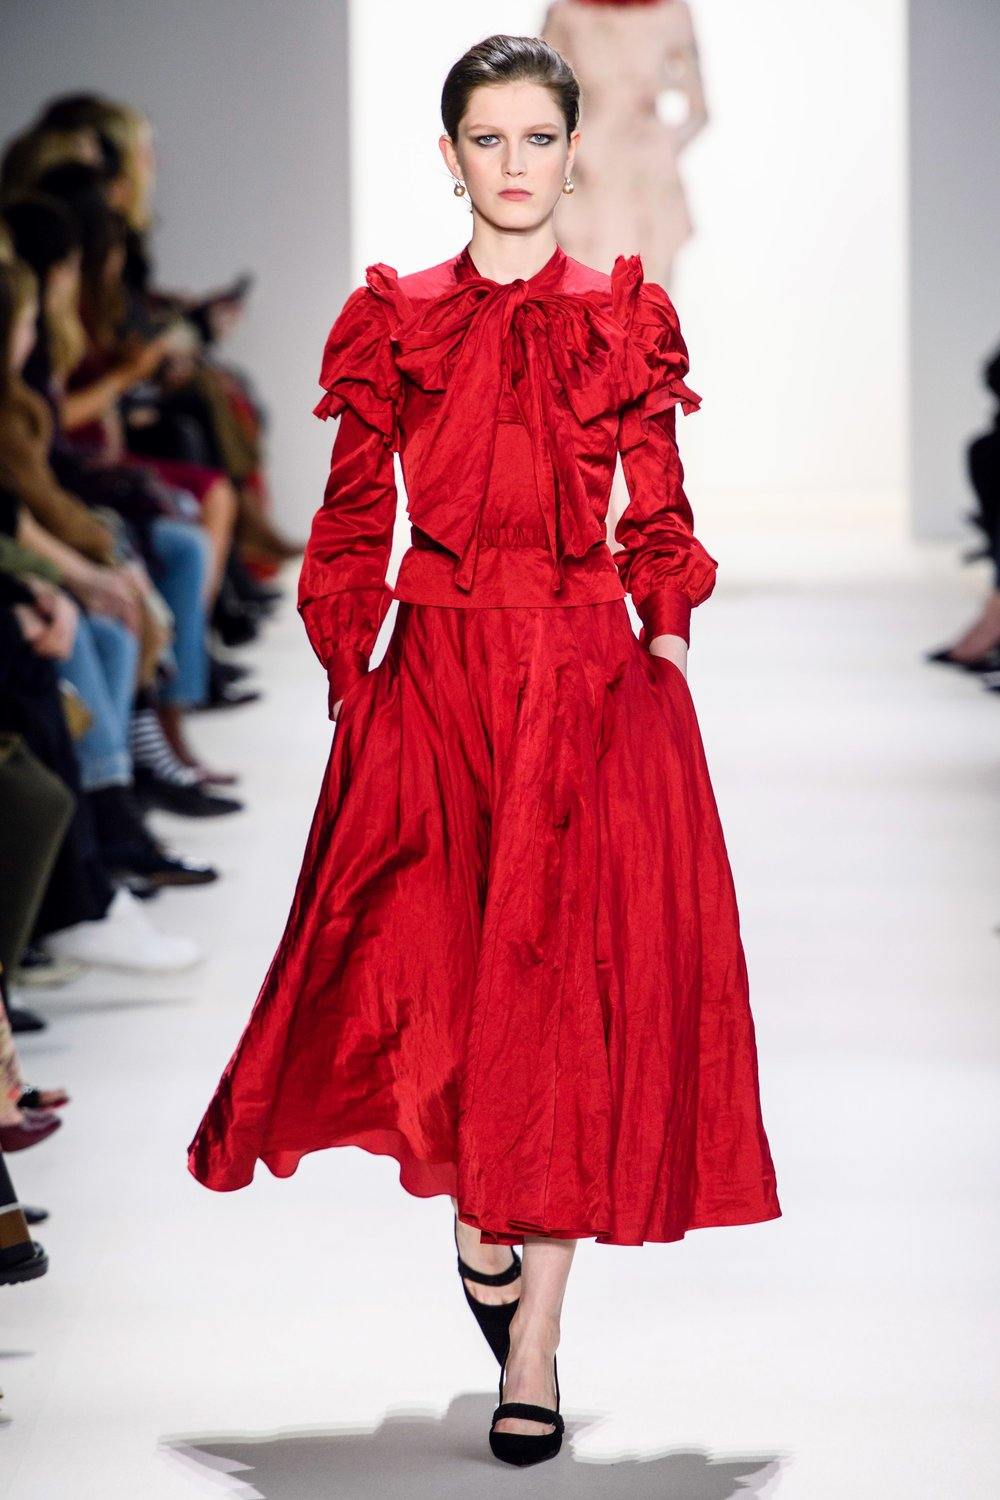 BROCK COLLECTION, COURTESY OF VOGUE RUNWAY